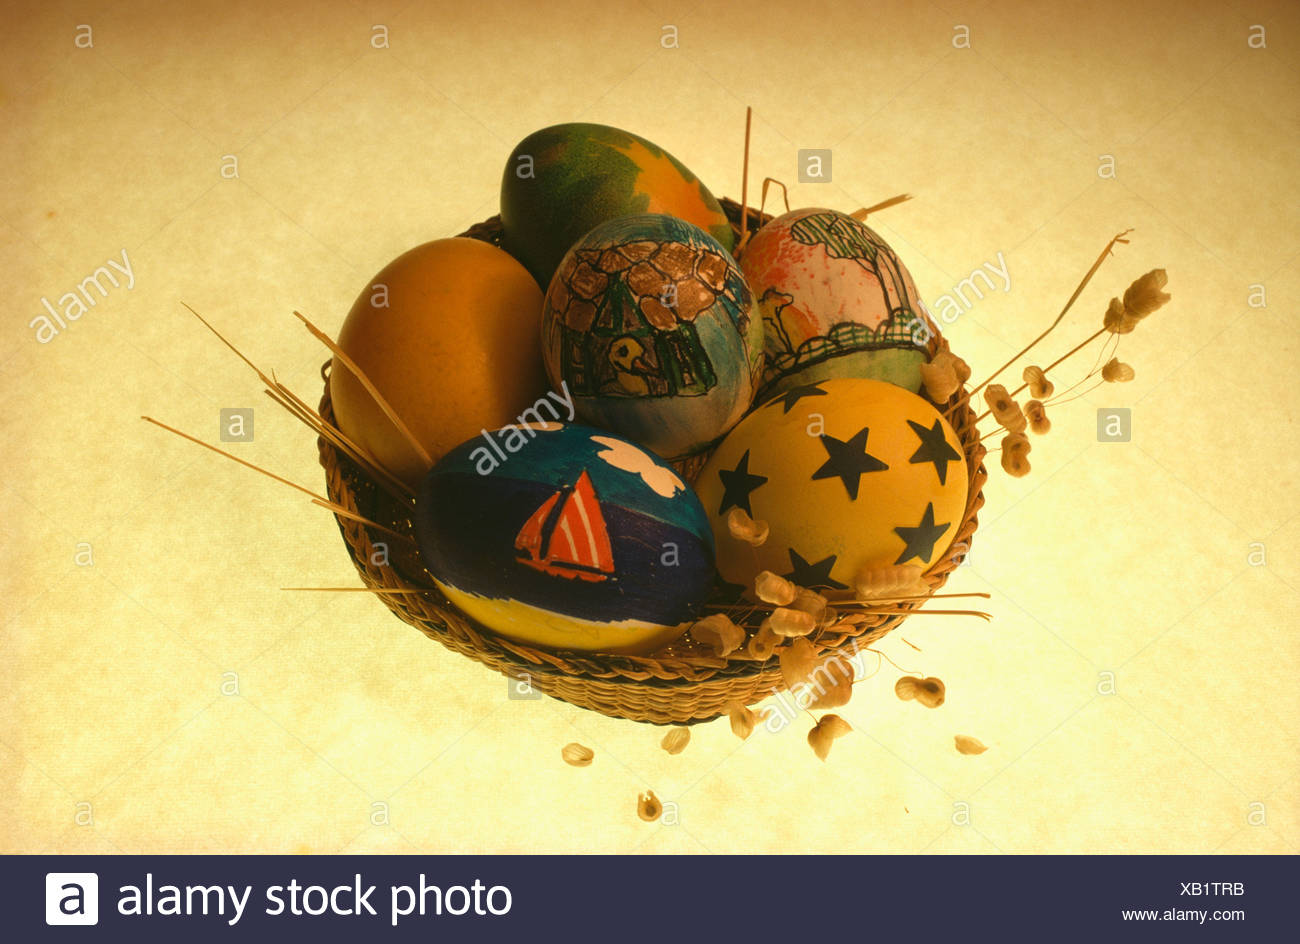 Close Up Of Basket Of Blown Eggs Decorated And Painted For